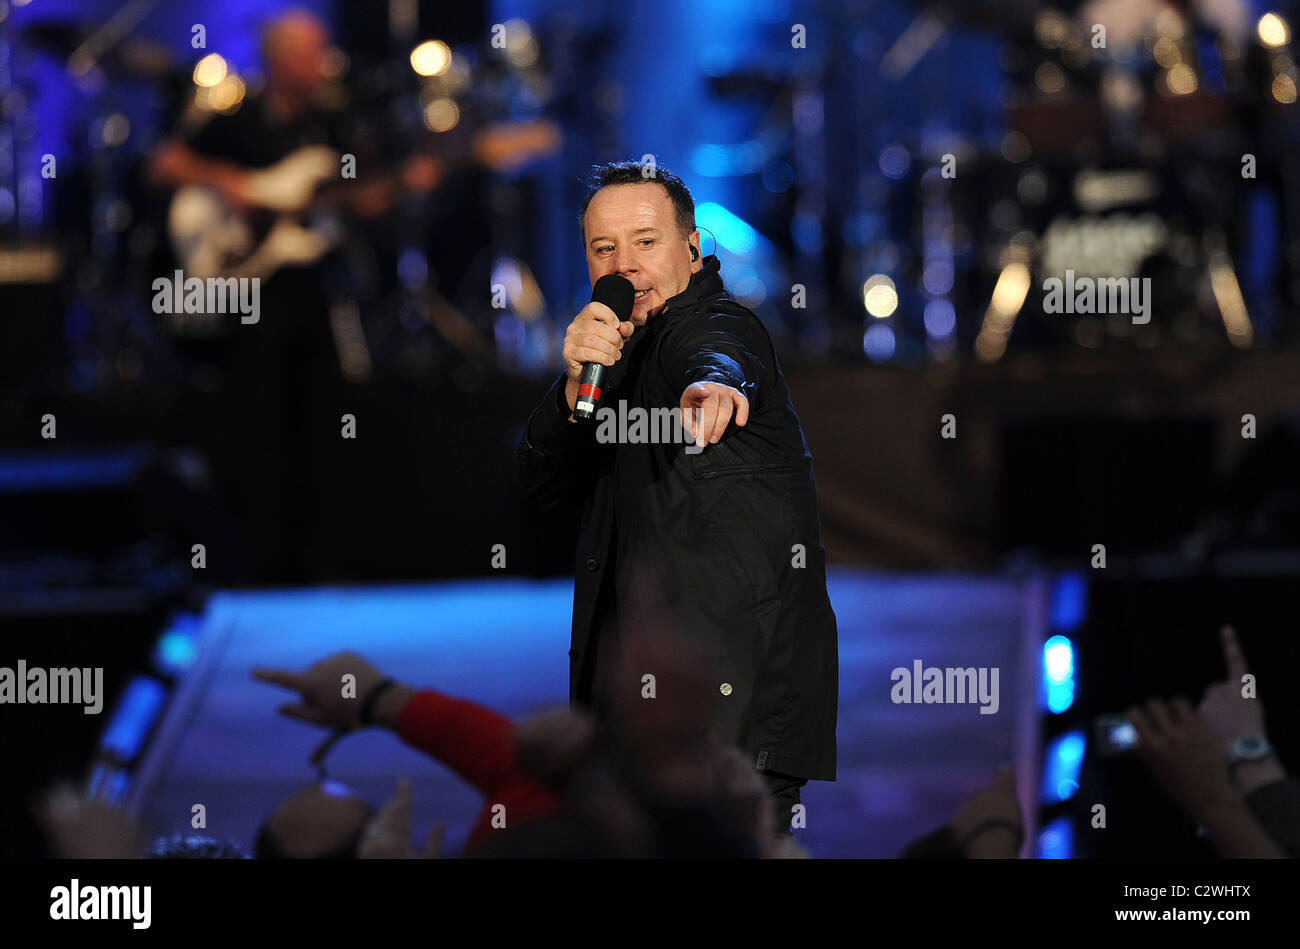 Jim Kerr of Simple Minds The Nelson Mandela's 90th Birthday concert '46664' in Hyde Park. London, England - Stock Image